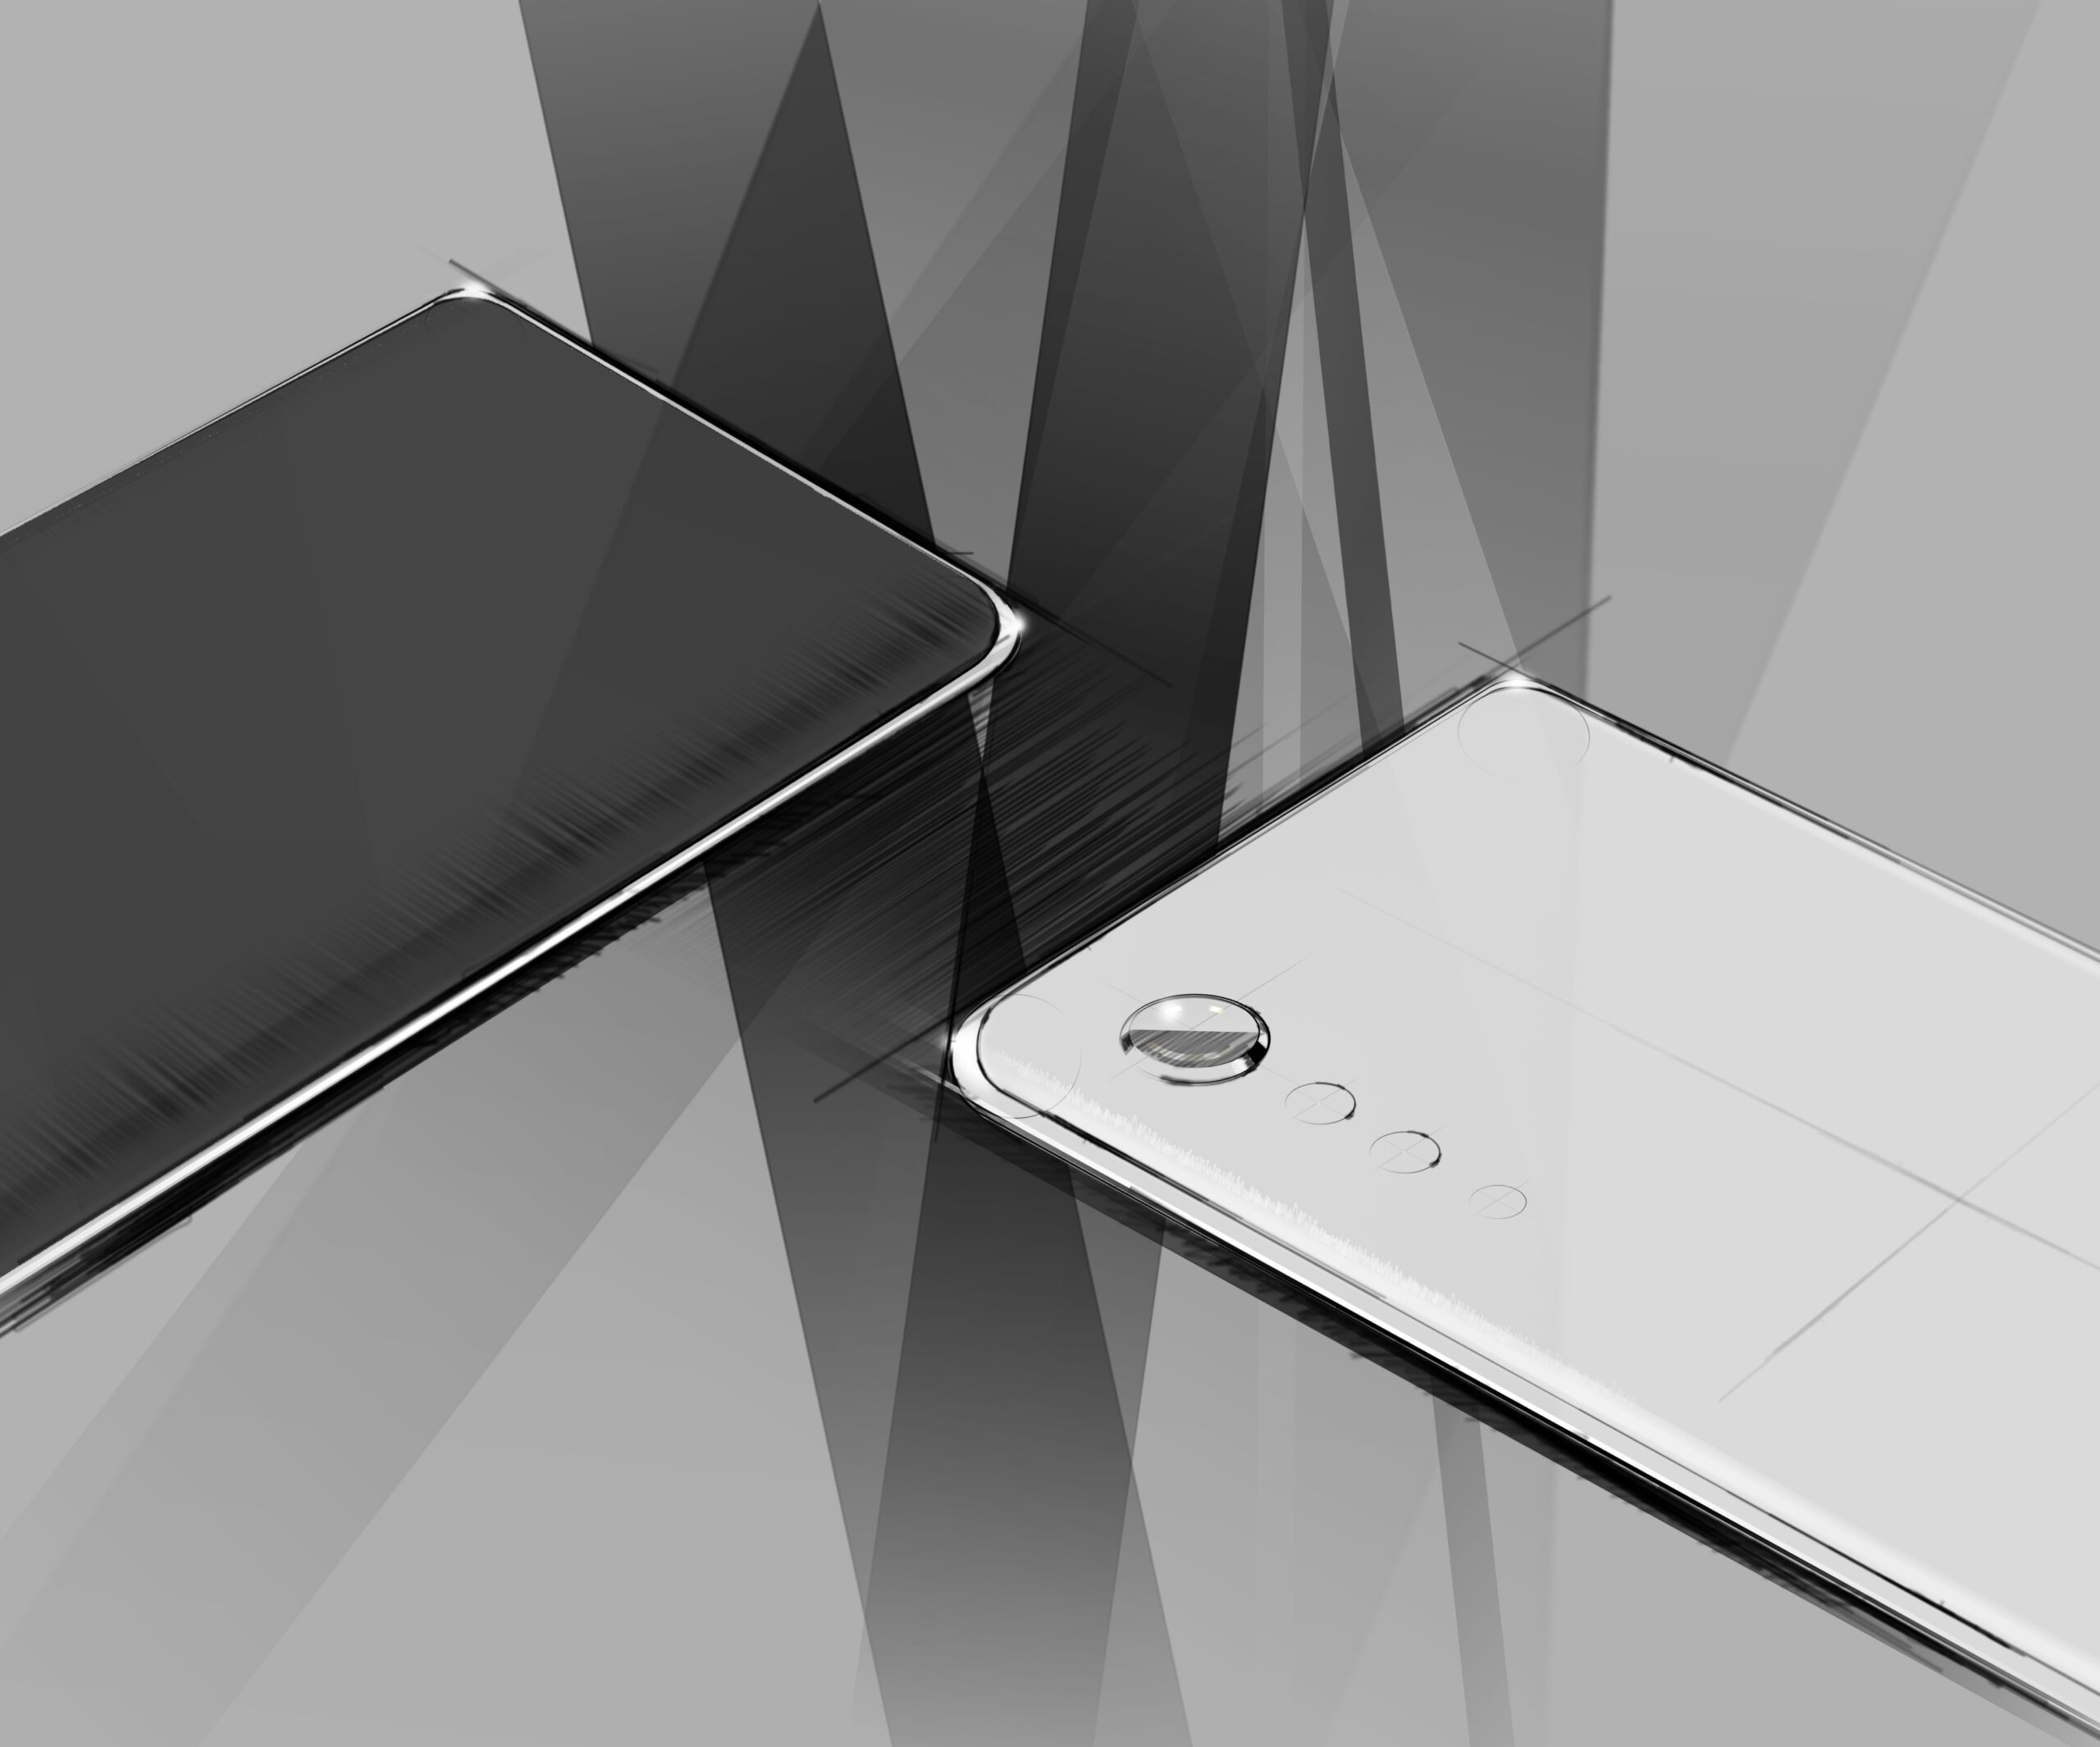 Render image of LG's upcoming flagship smartphone in black and white